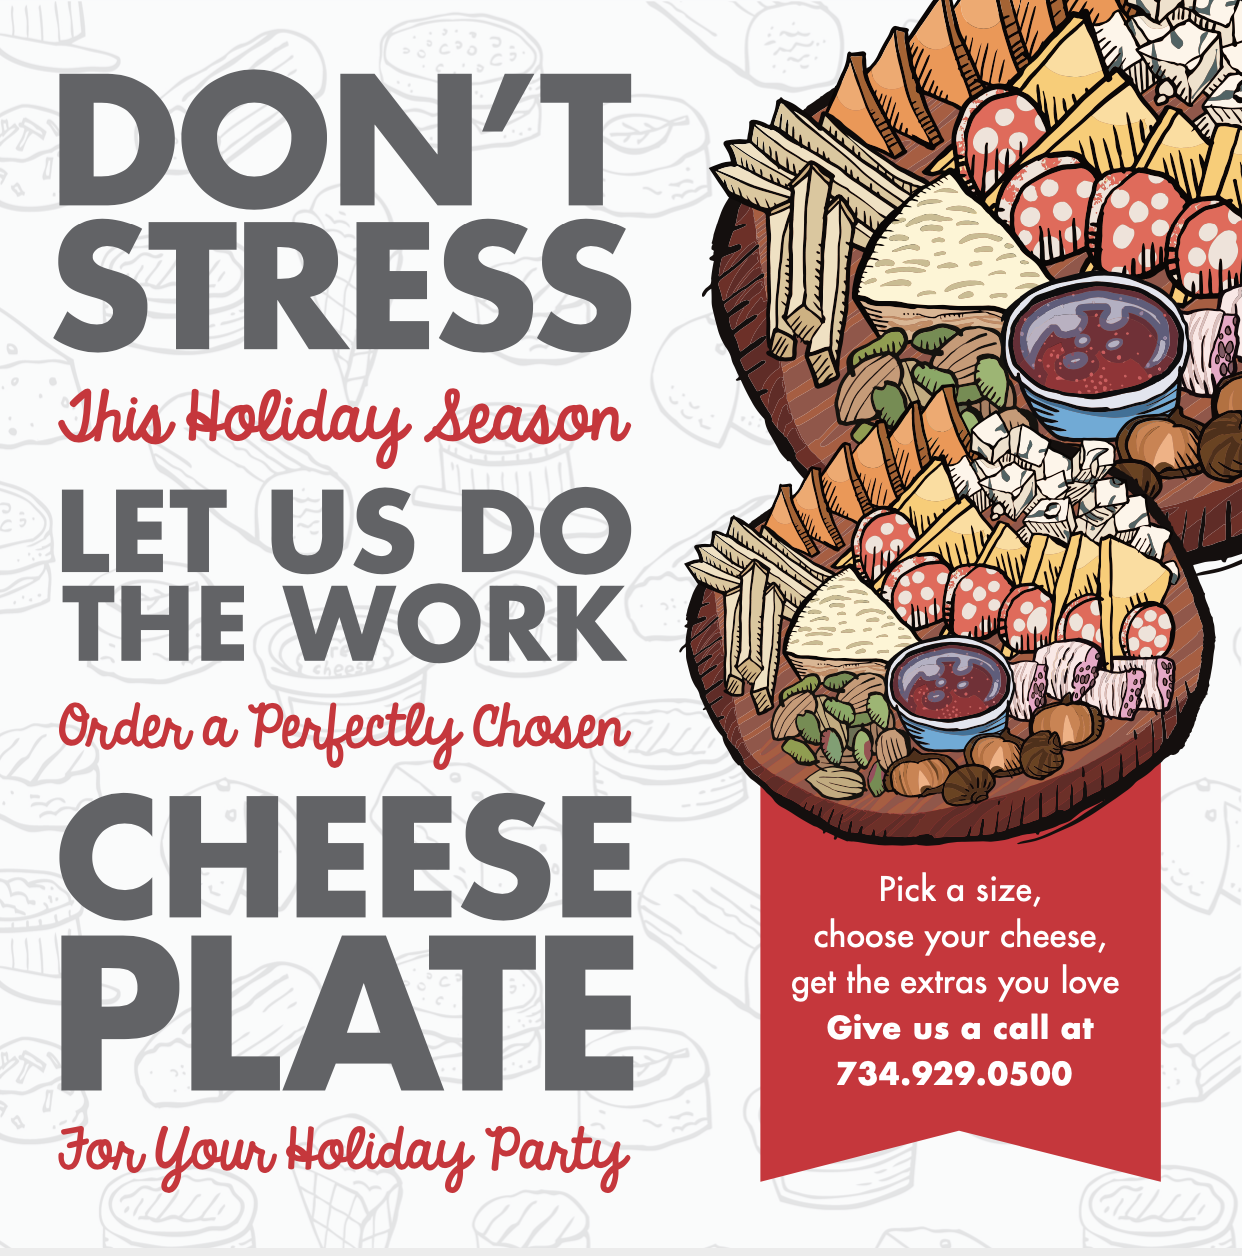 Don't Stress Cheese Plate